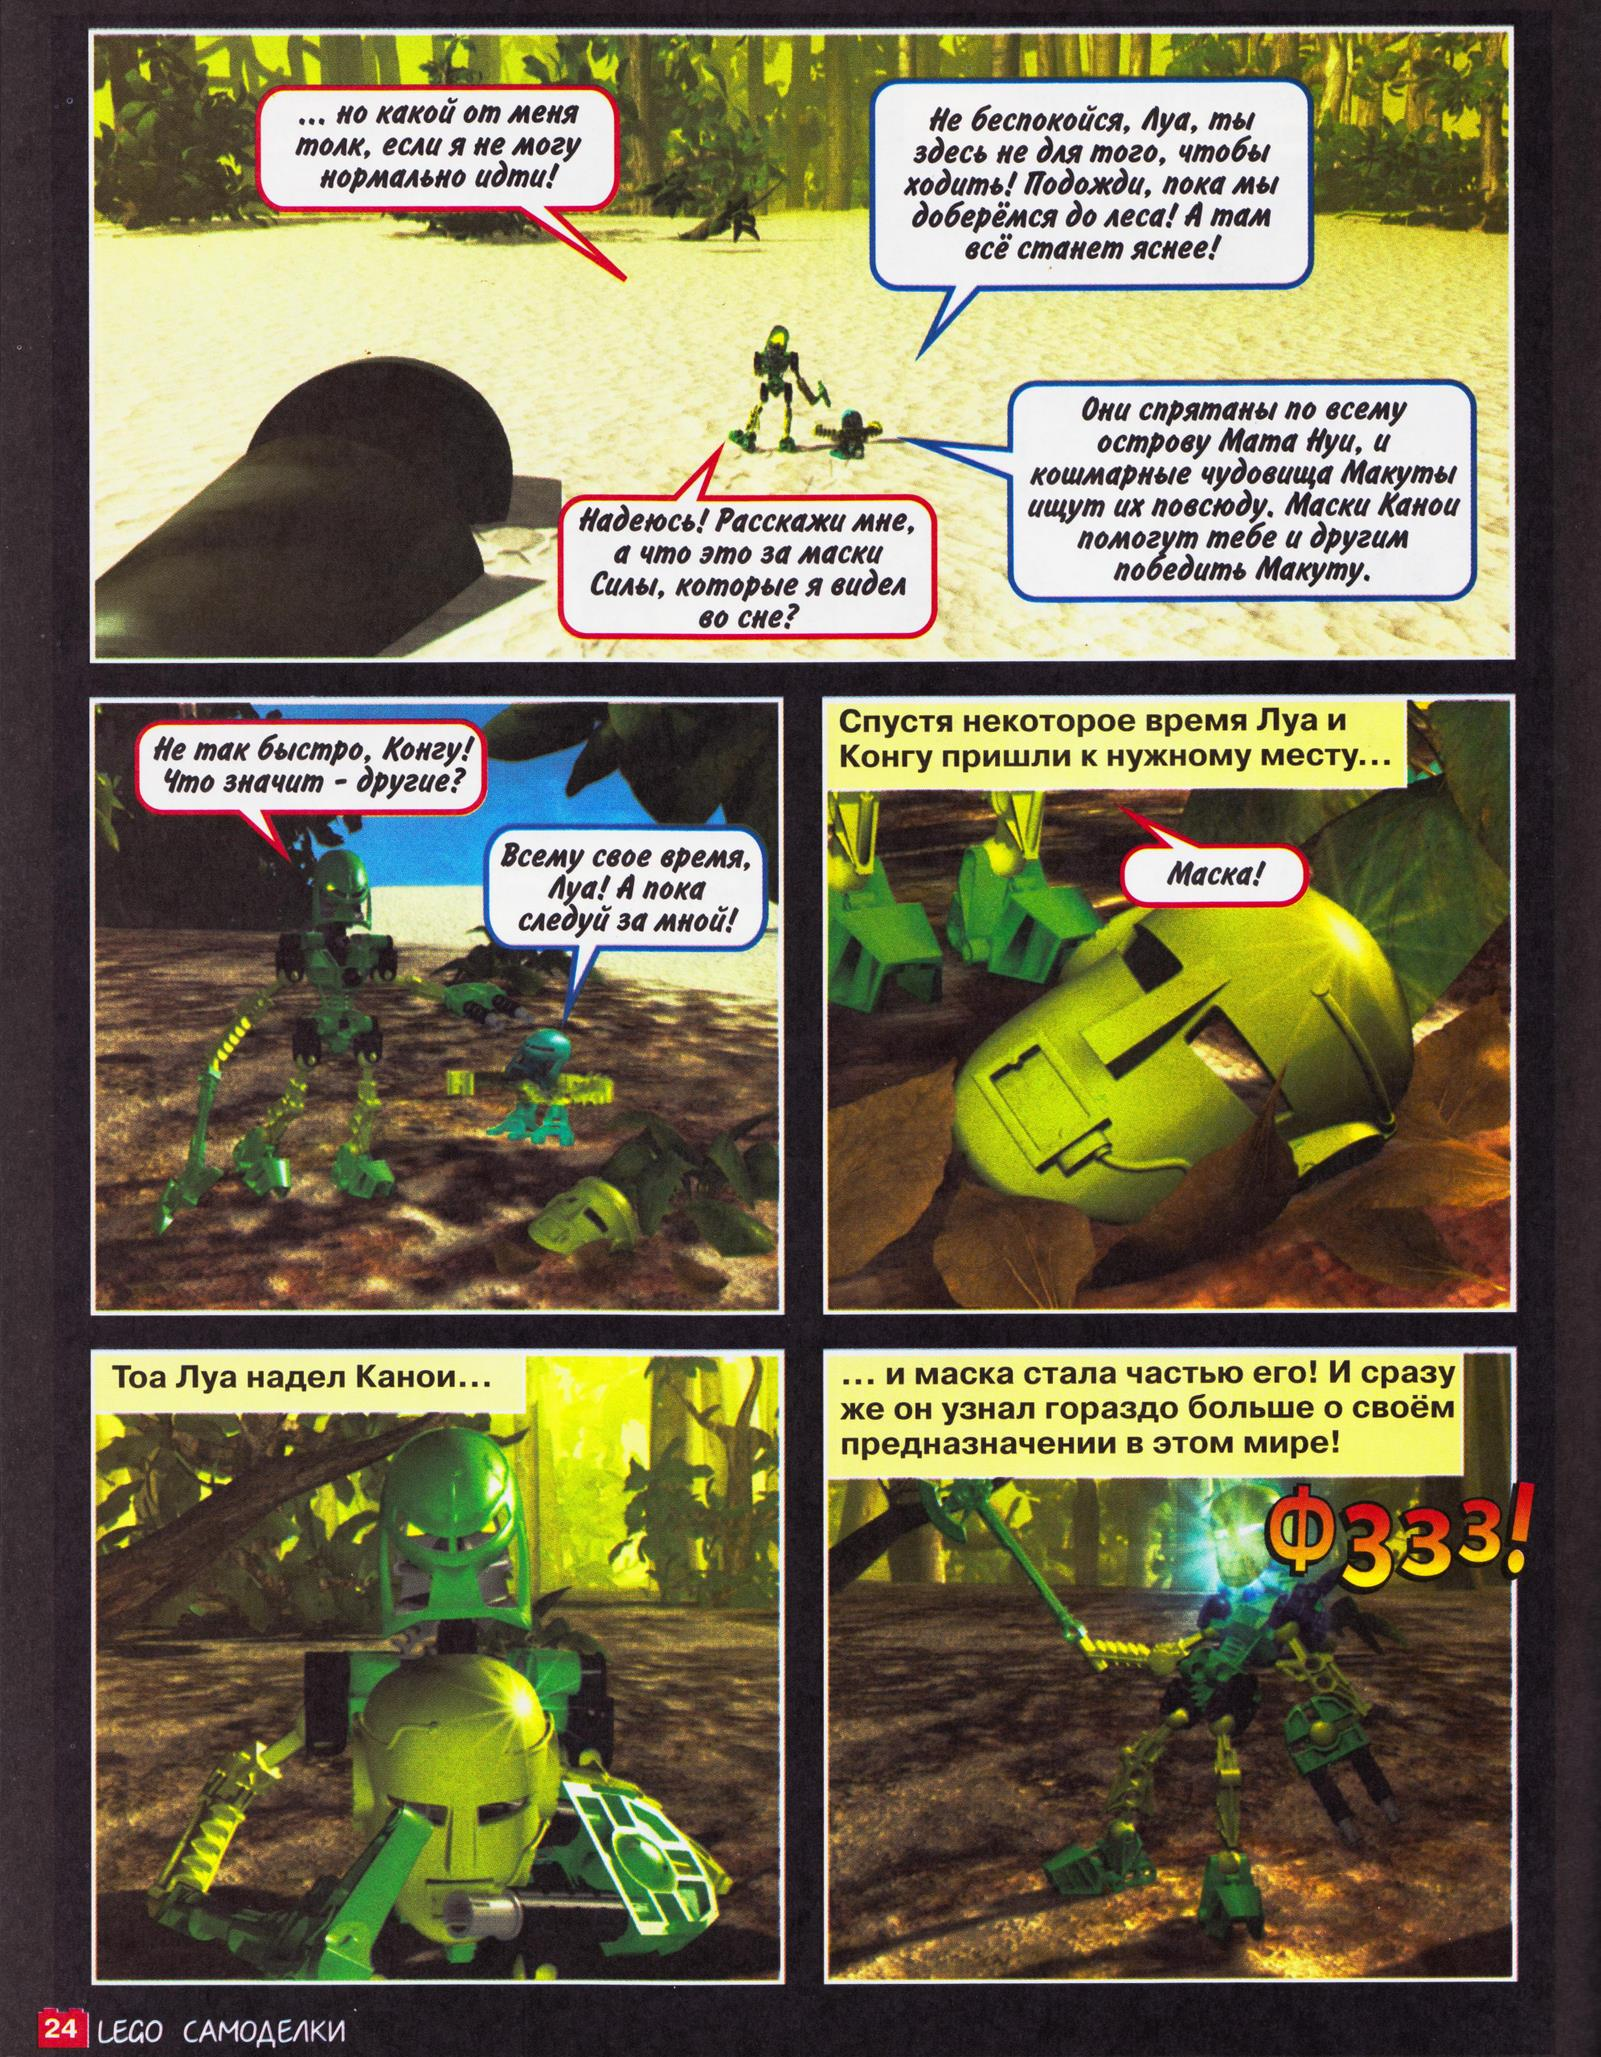 http://biosector01.com/wiki/images/6/62/The_Legend_of_Lewa_Part_One_Page_Three.jpg